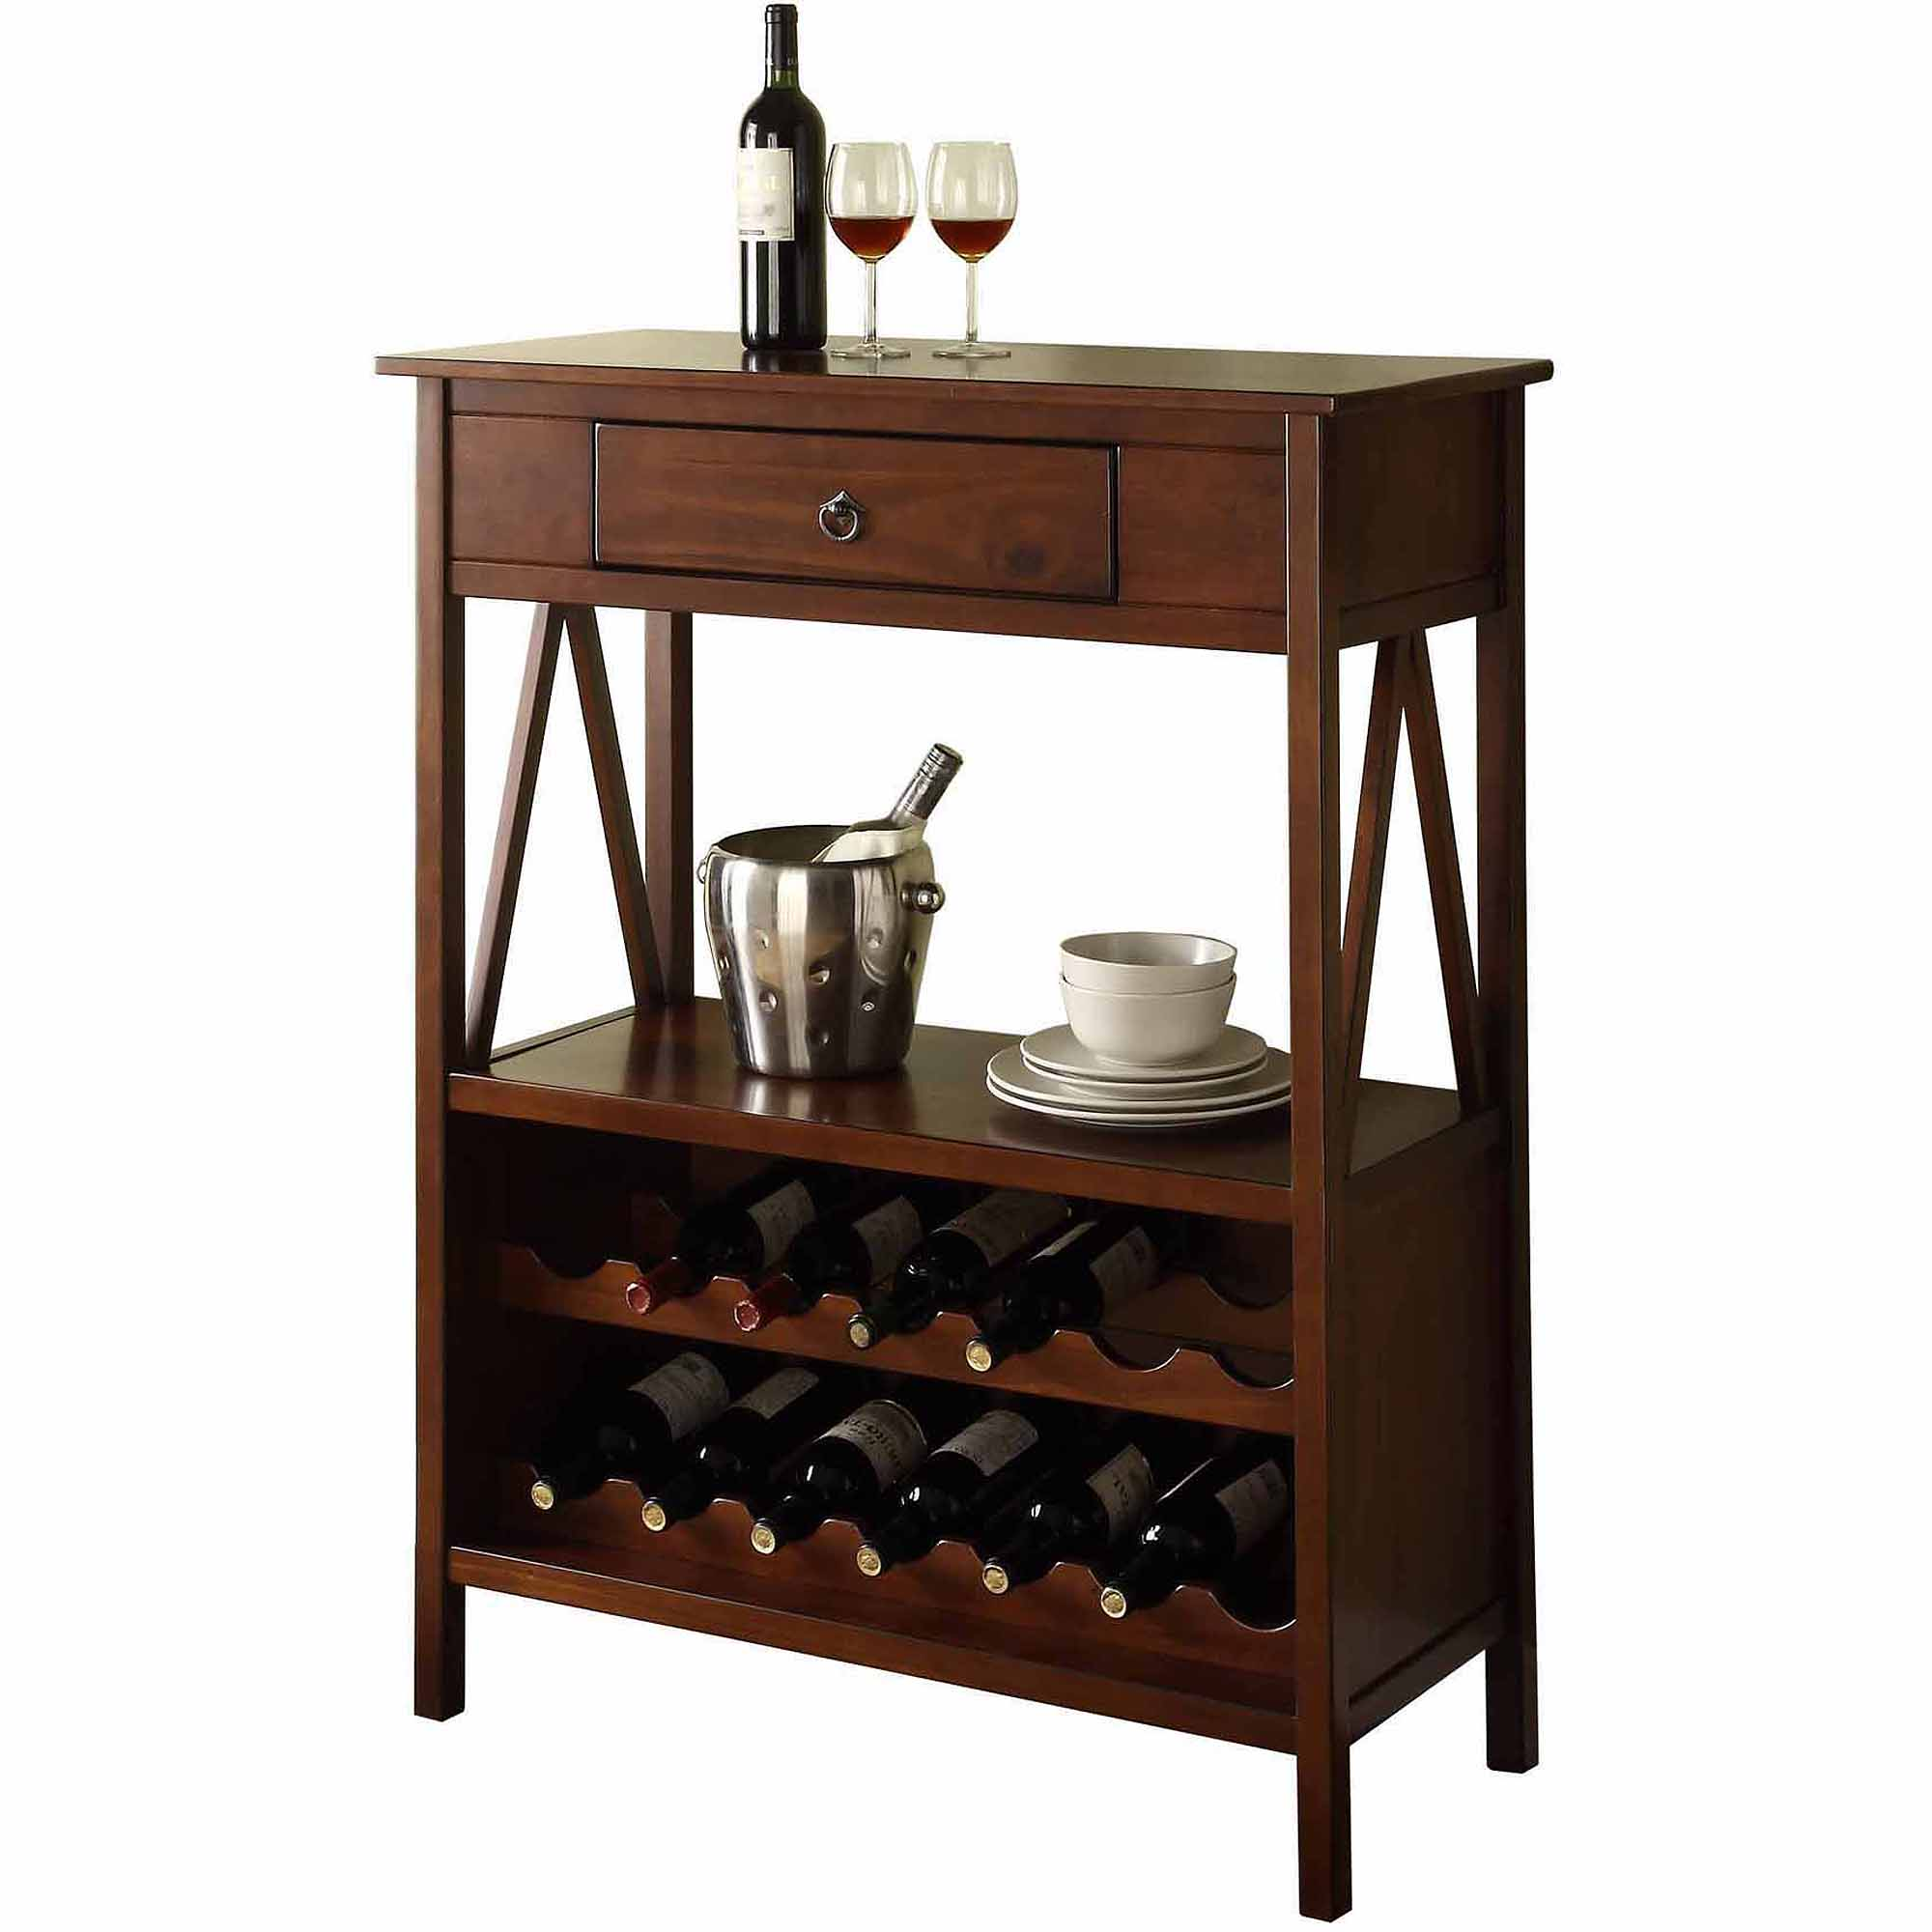 Linon Titian Wine Cabinet, Antique Tobacco, (14 bottle)